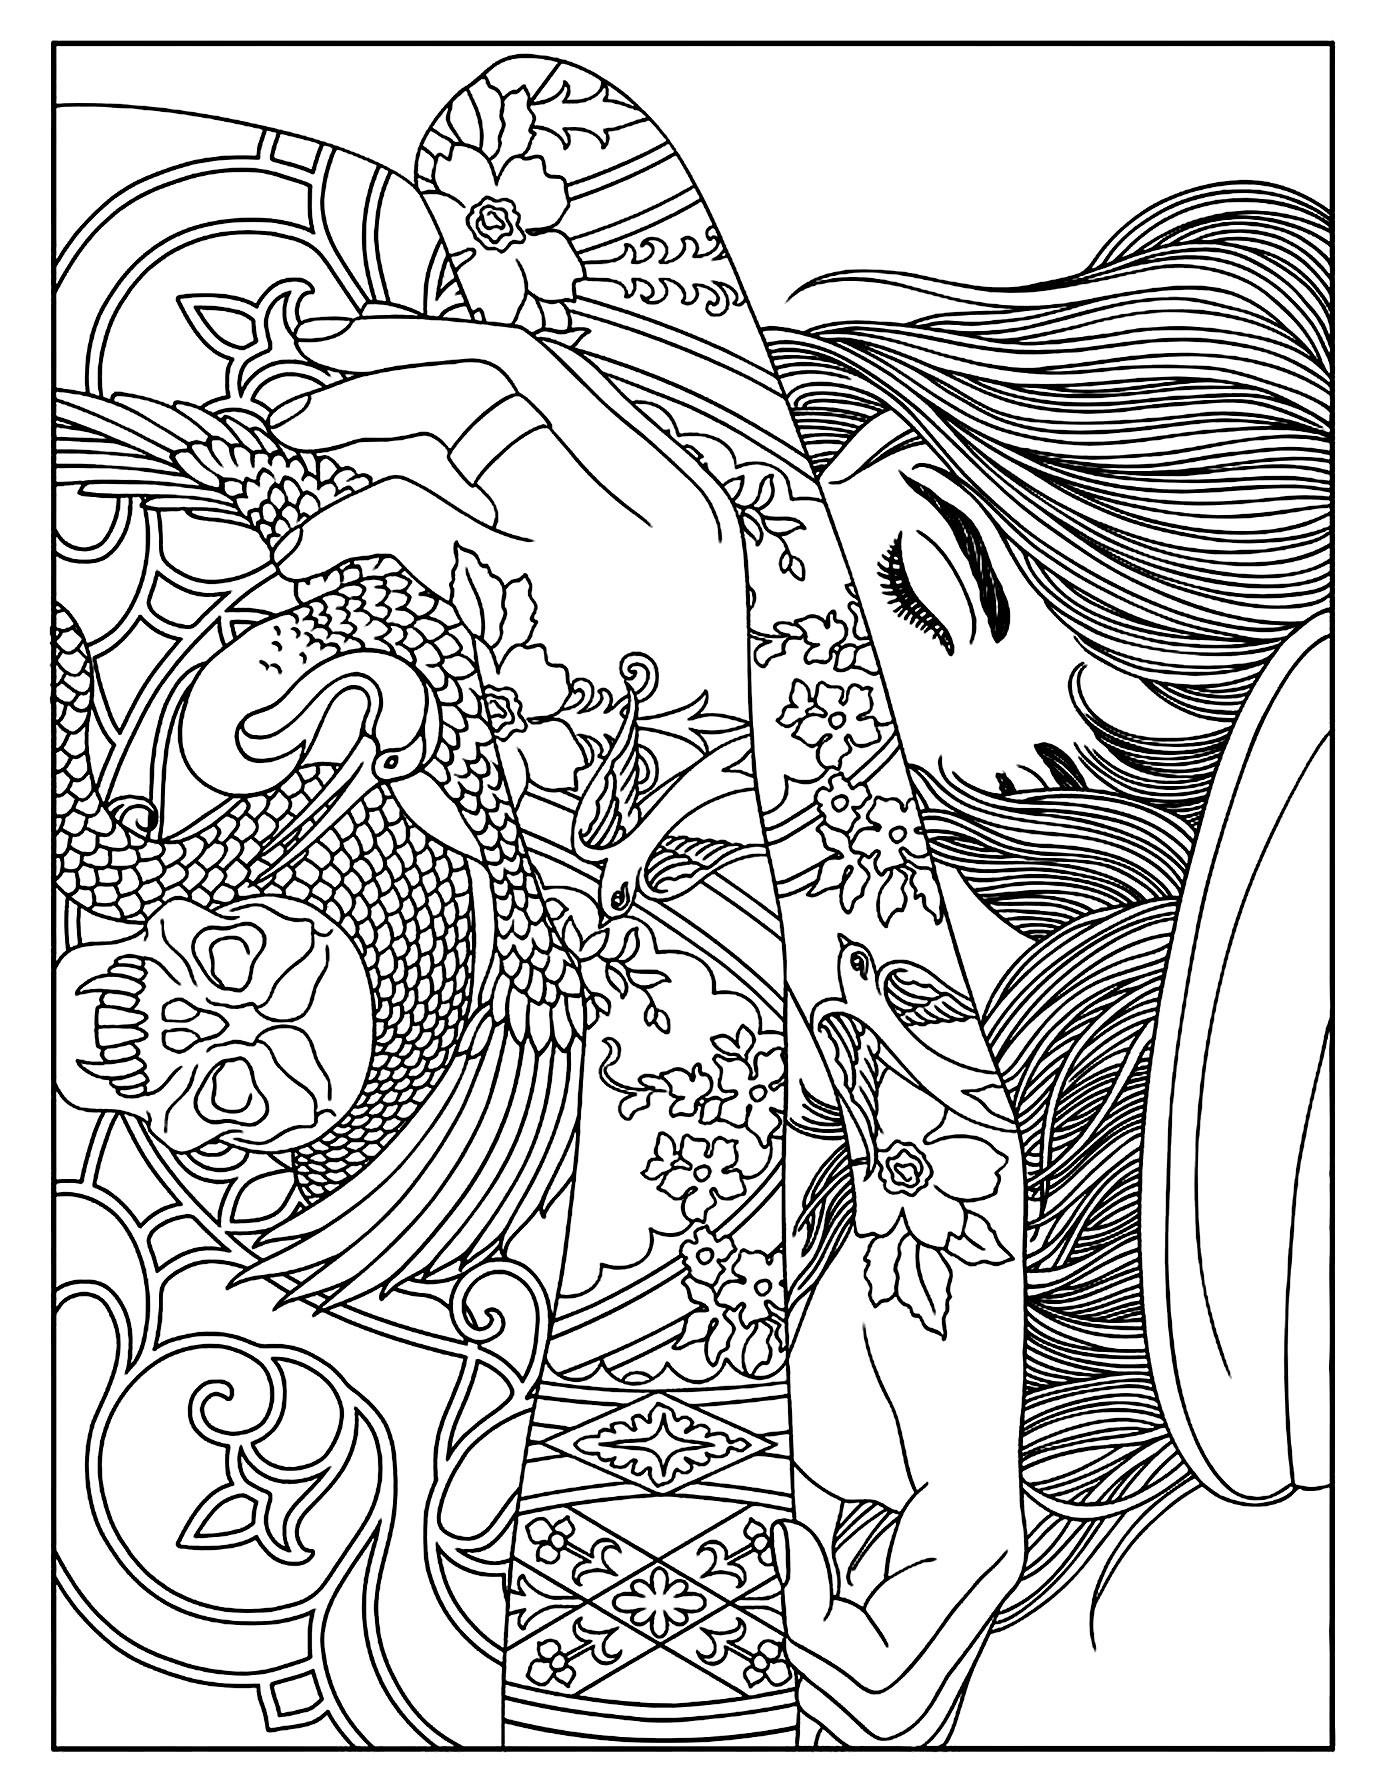 Tattoo Coloring Pages For Adults  Woman tattoos Tattoos Adult Coloring Pages